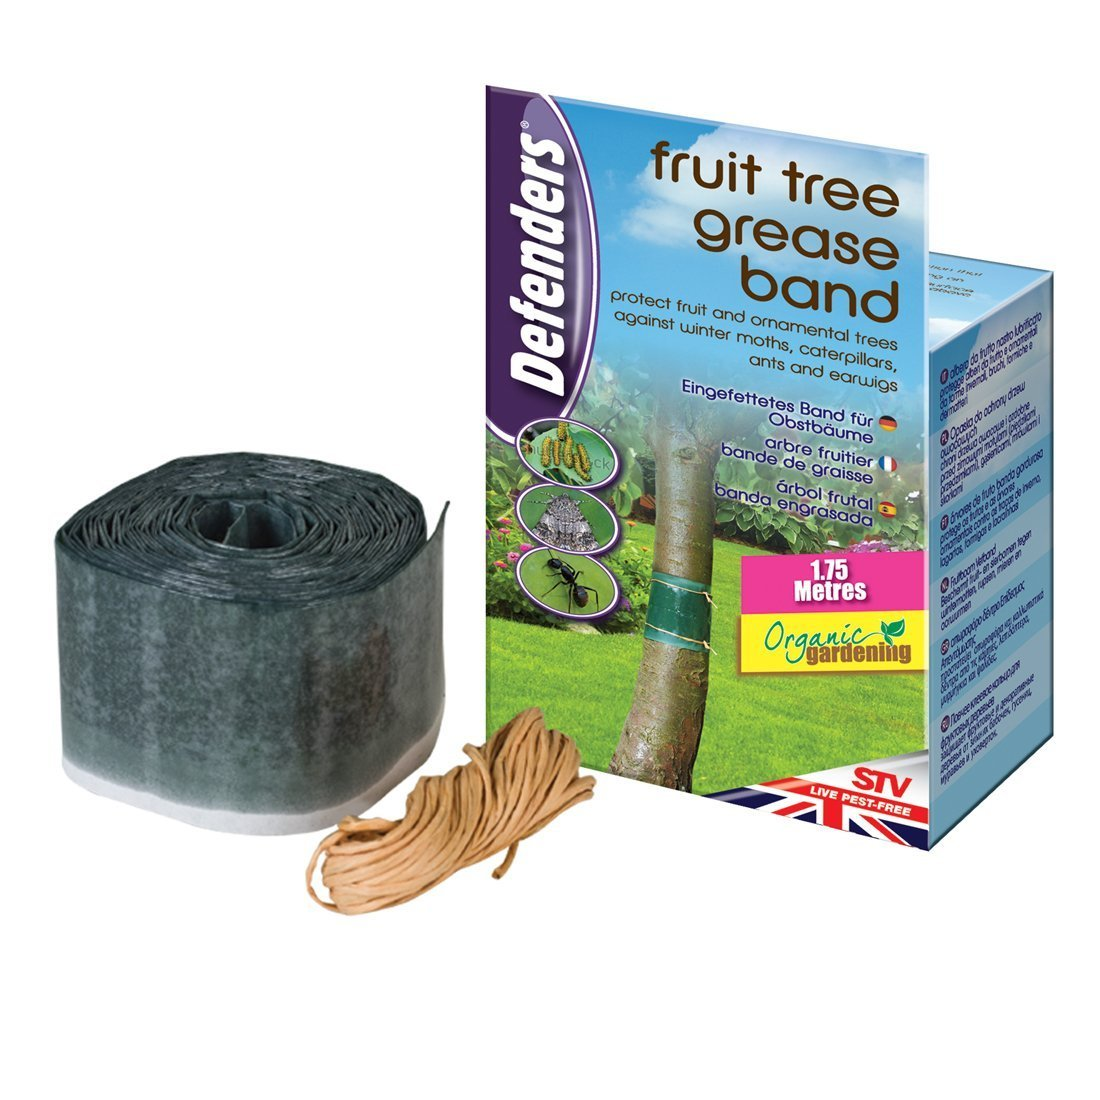 Defenders 1.75 m x 10 cm Fruit Tree Grease Band (Poison-Free Insect Protection, Suitable for Organic Gardening, Effective for Up To 2 Months) STV International STV436